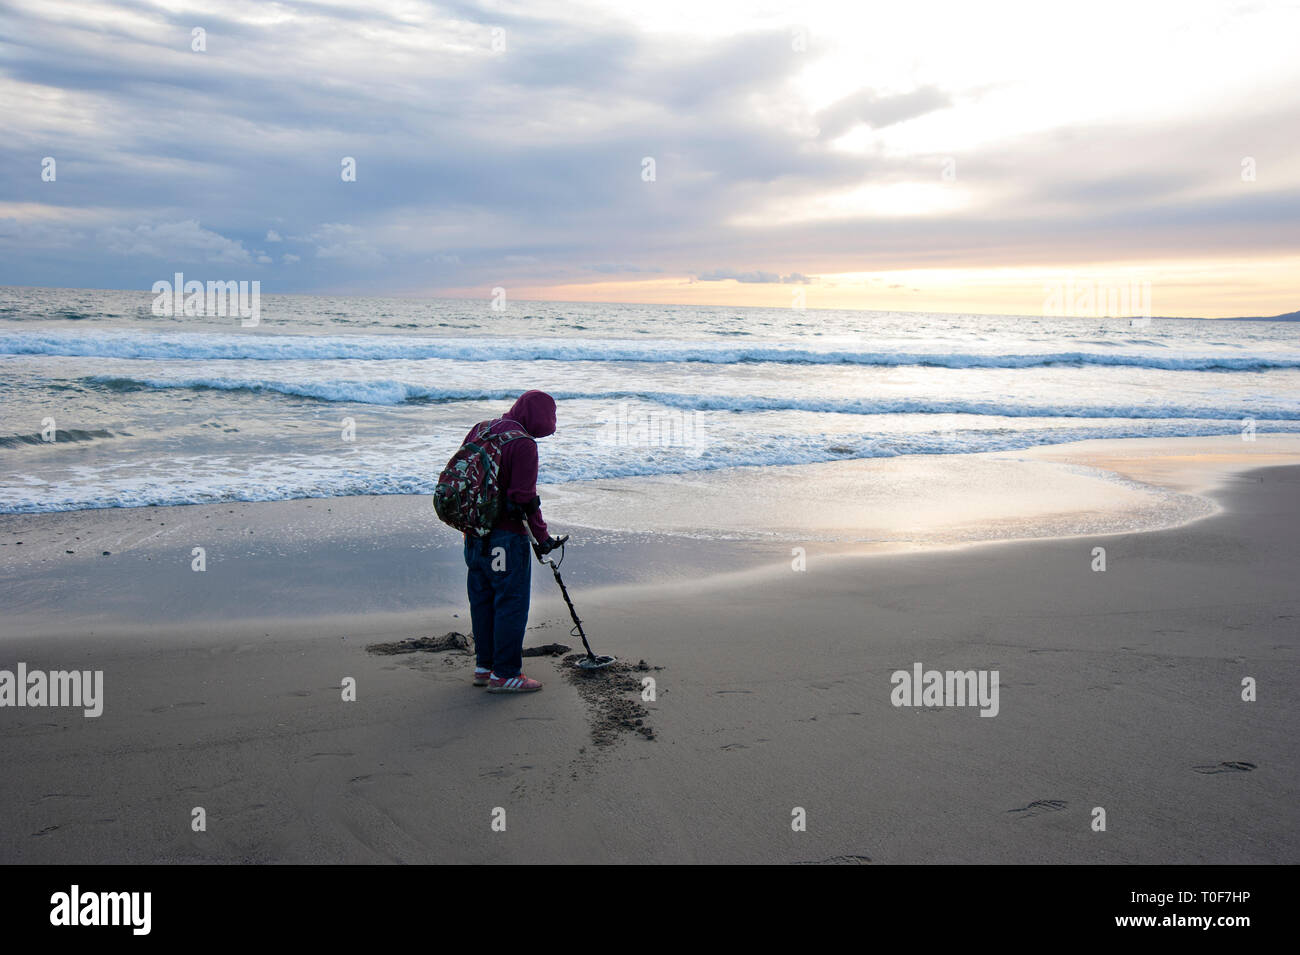 Prospector with metal detector searching for buried treasures at Santa Monica beach - Stock Image